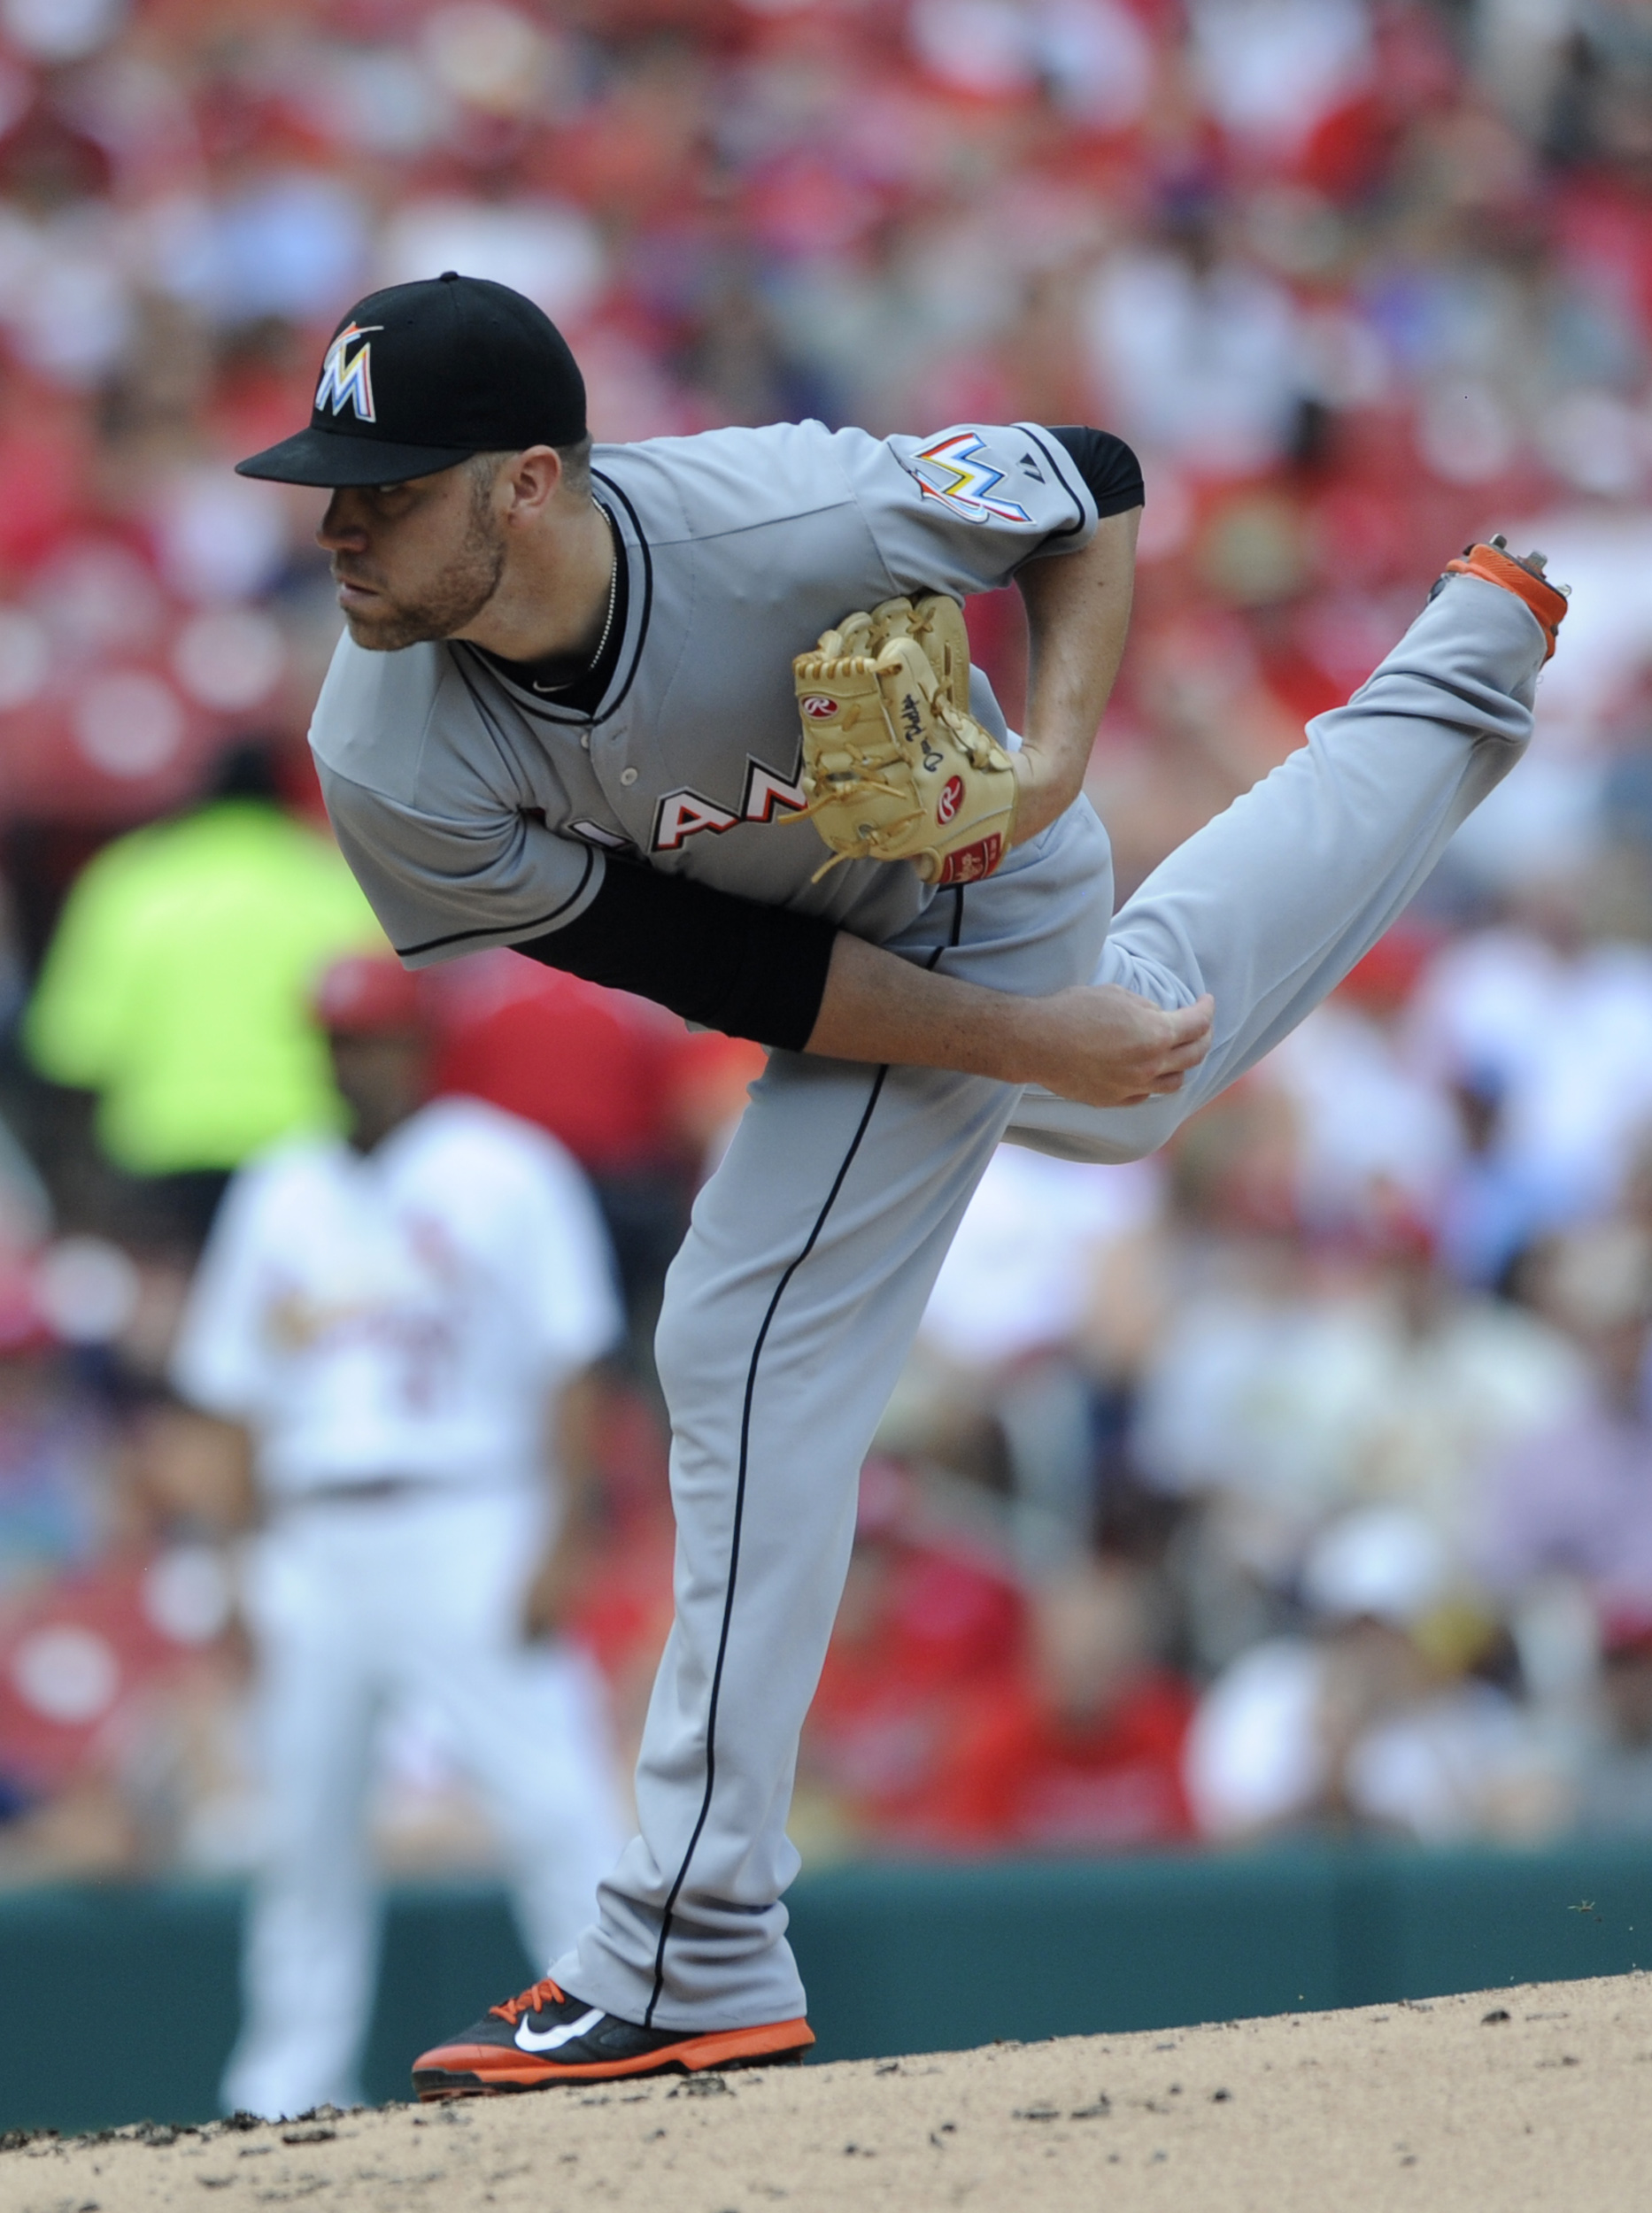 Miami Marlins' starting pitcher David Phelps (41) throws against the St. Louis Cardinals in the first inning of a baseball game, Sunday, Aug. 16, 2015, at Busch Stadium in St. Louis. (AP Photo/Bill Boyce)